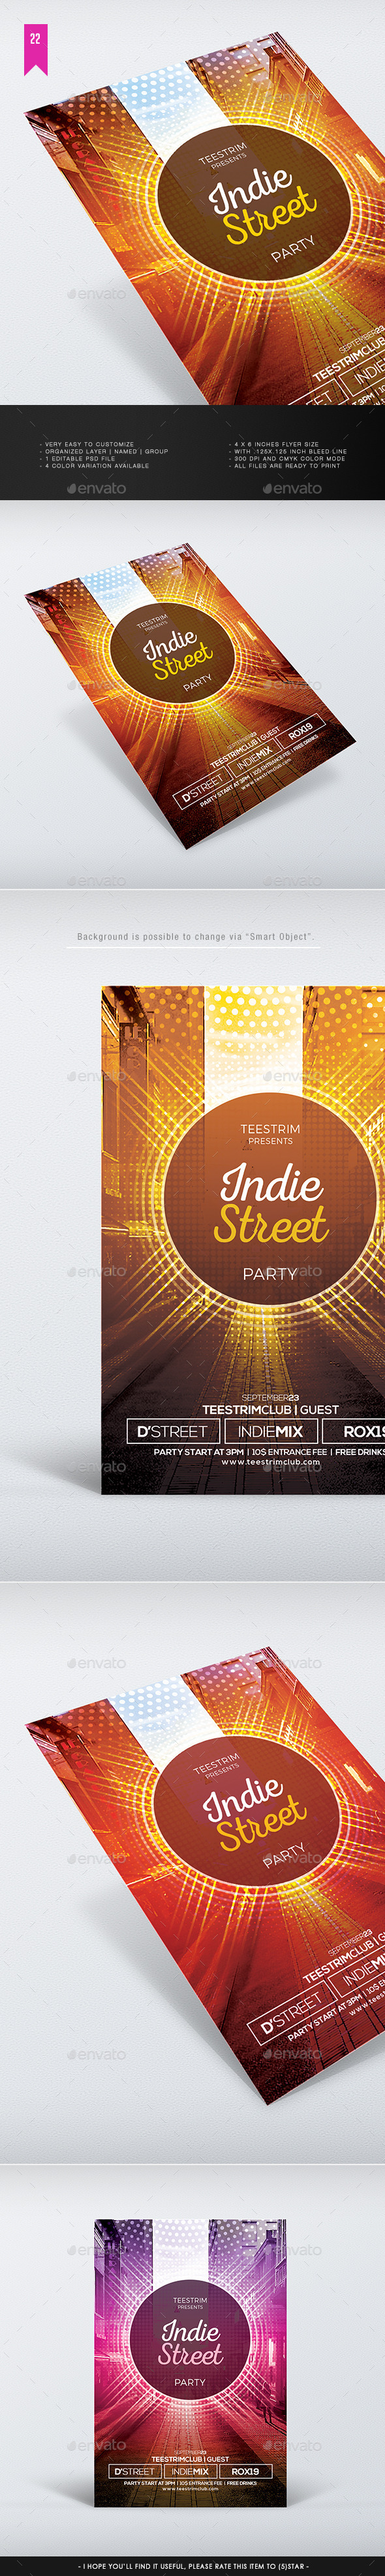 Indie Street - Flyer Template - Clubs & Parties Events